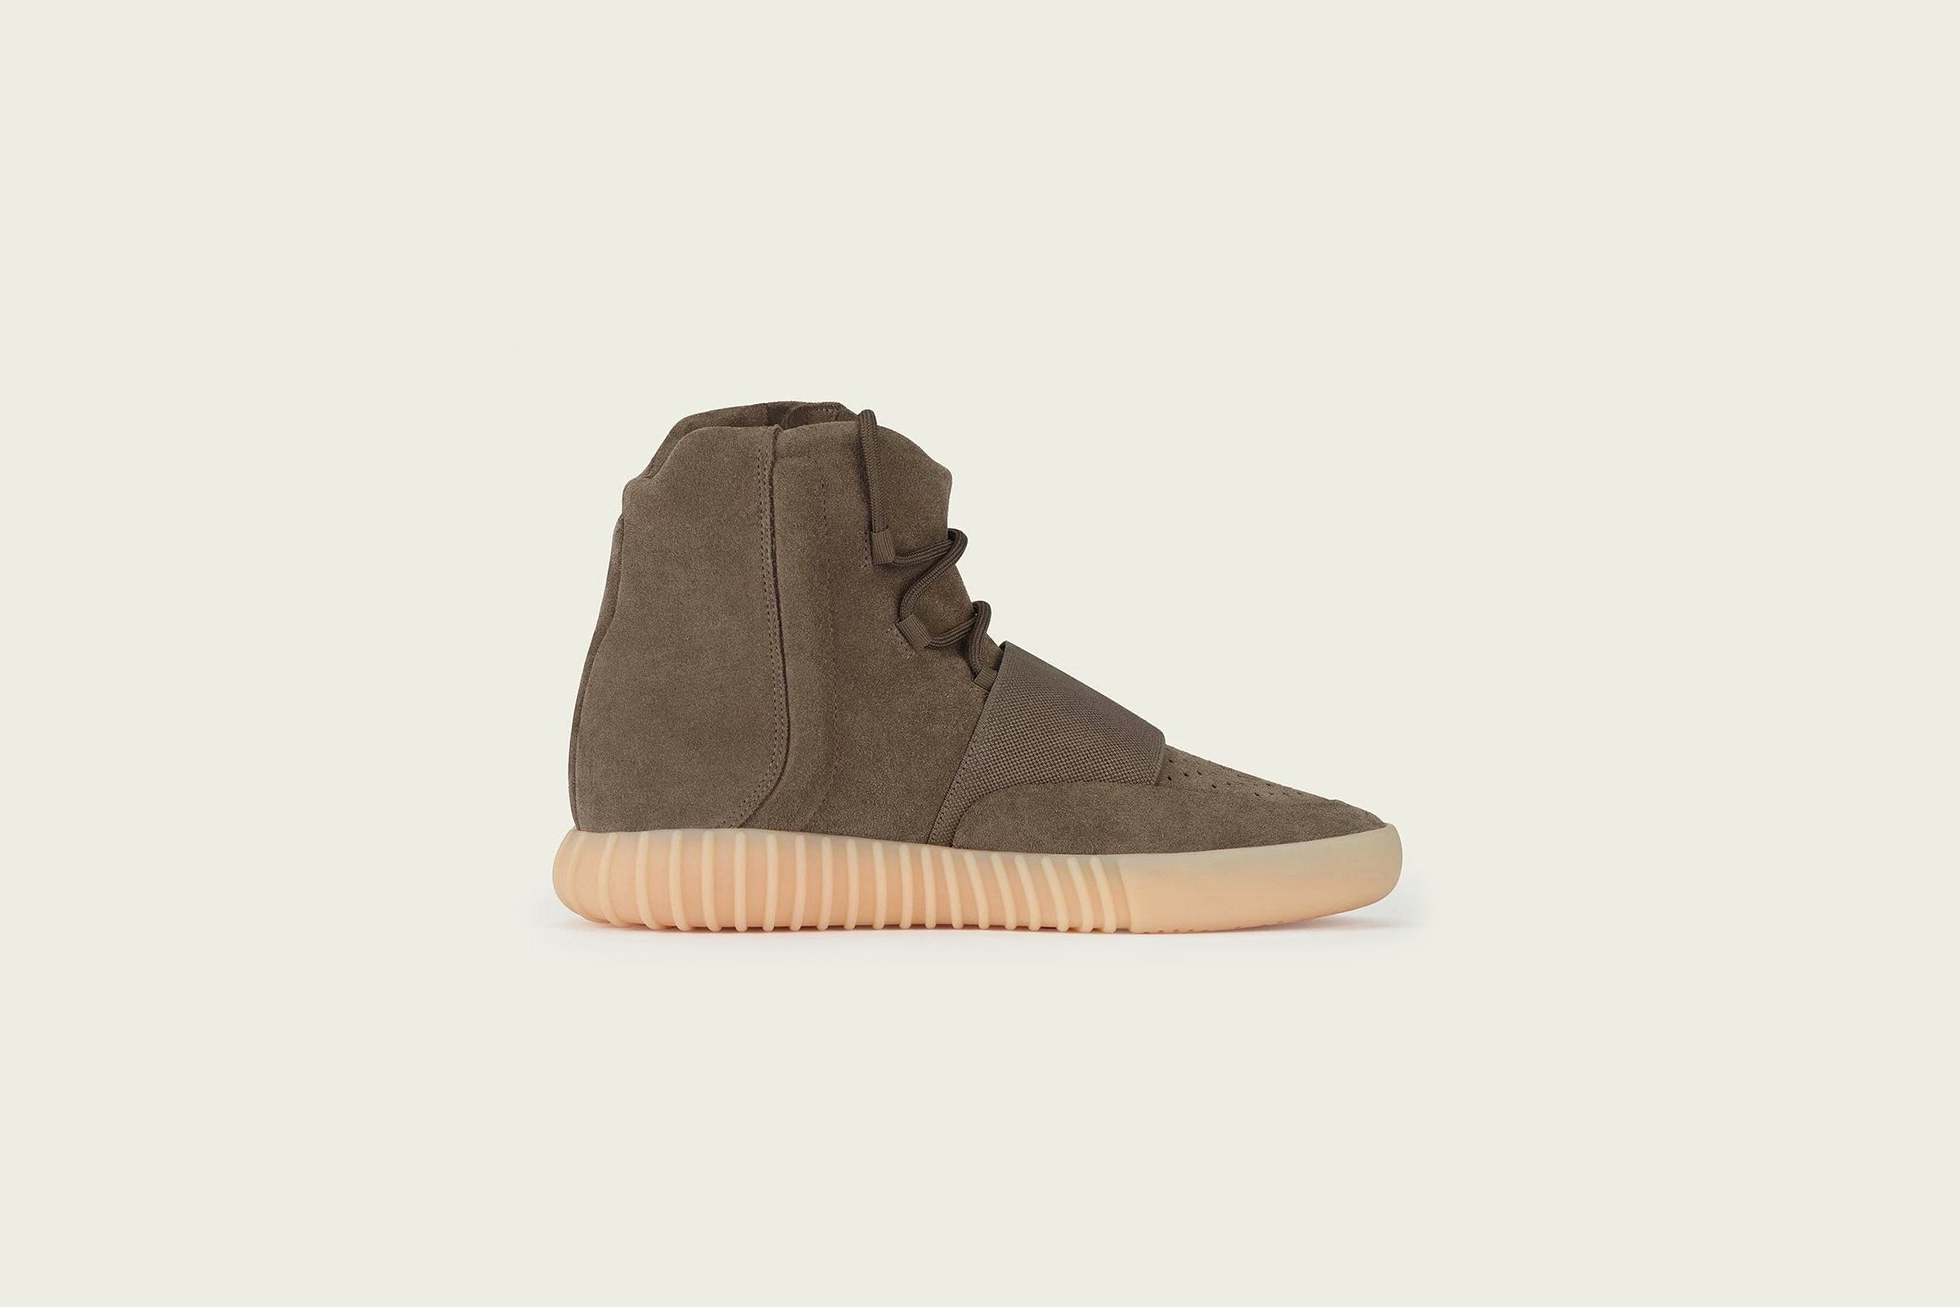 adidas Yeezy Boost 750 Brown 4